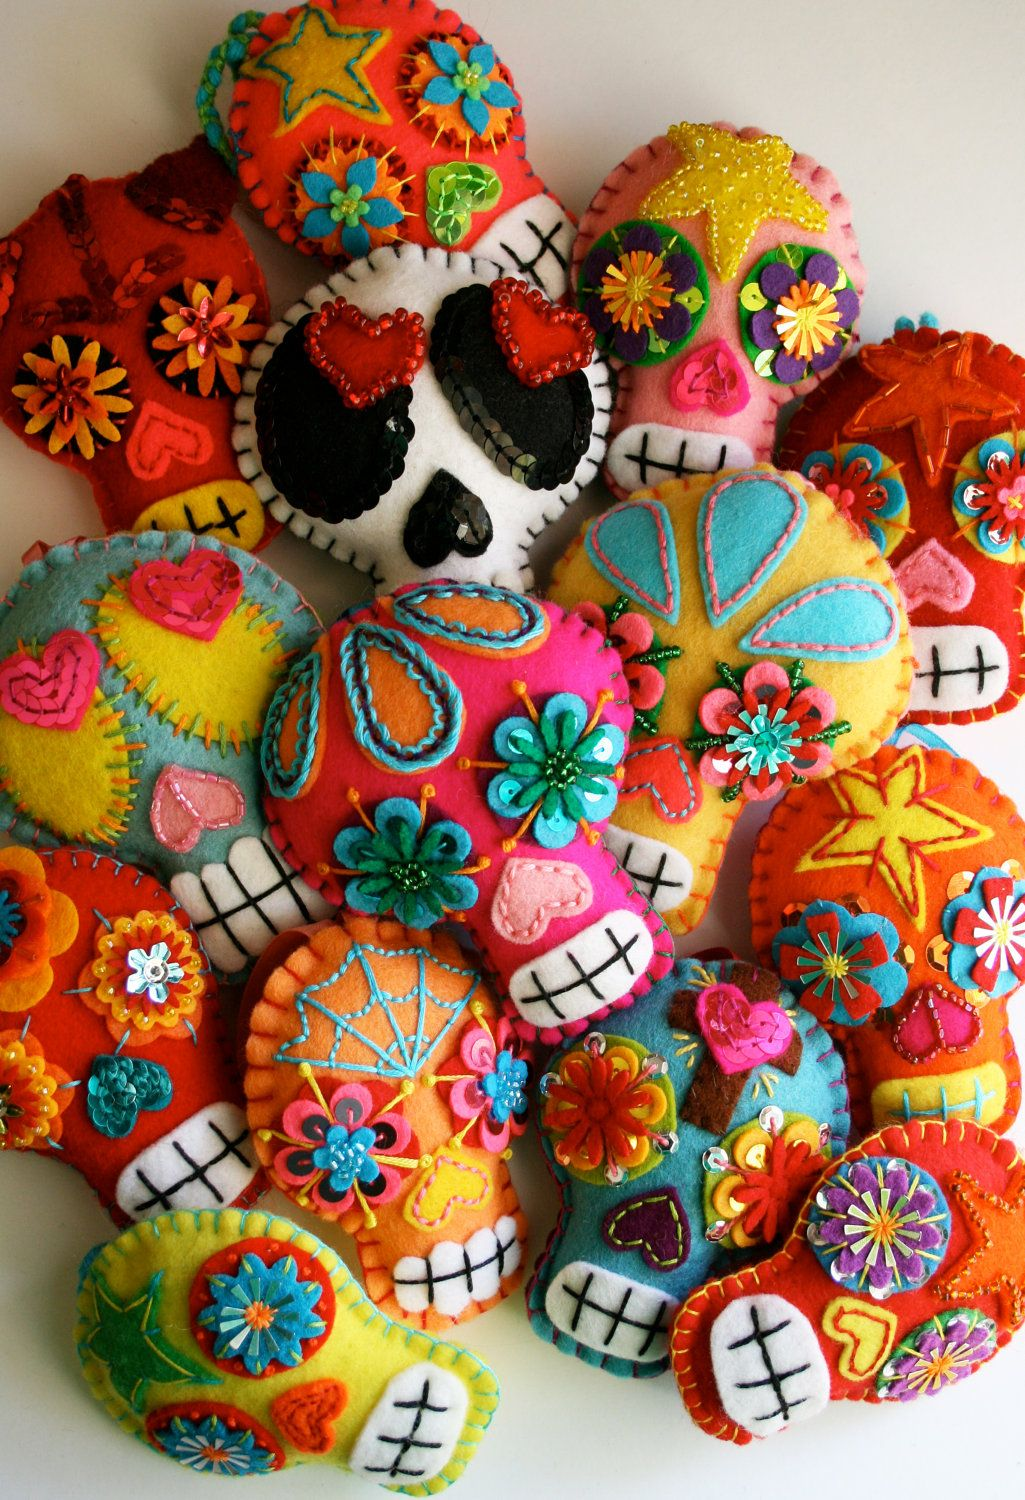 Dia de los Muertos - Custom Made Day of the Dead Sugar Skull  (So colorful and cute!)